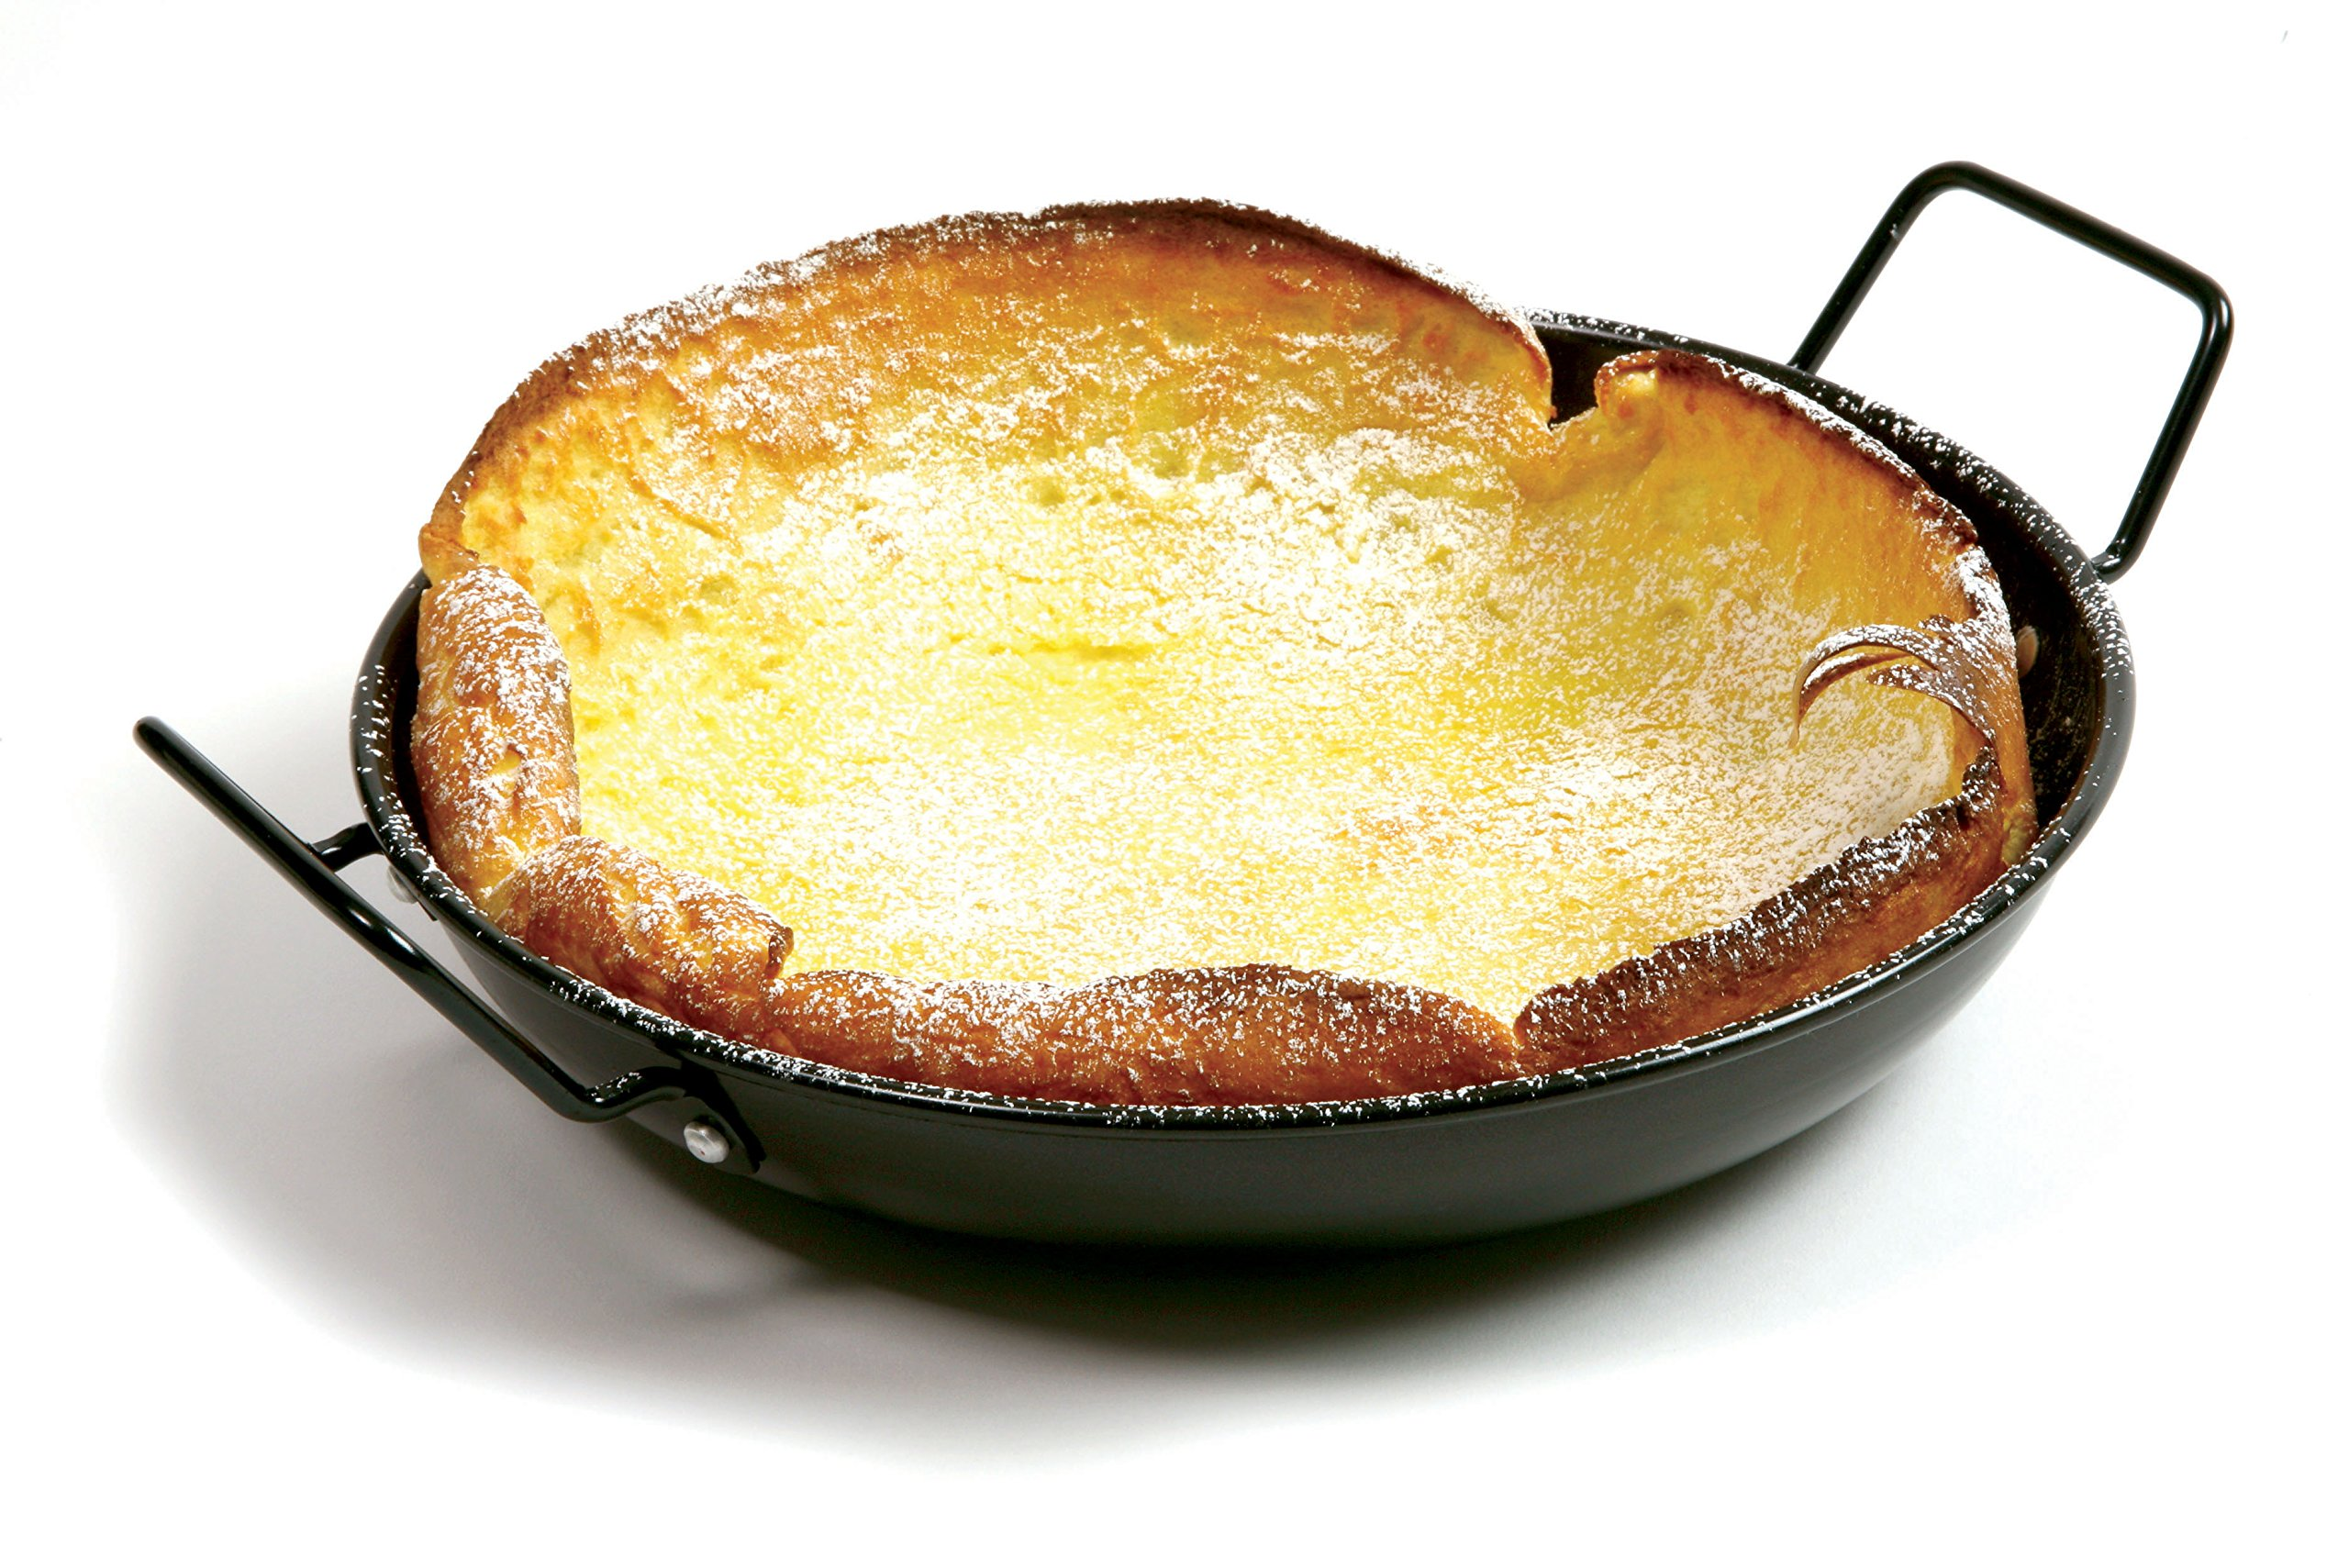 Norpro Nonstick Oven Dutch Baby/Paella Pancake Omelet Crepe Pan 11.5'' New by Norpro